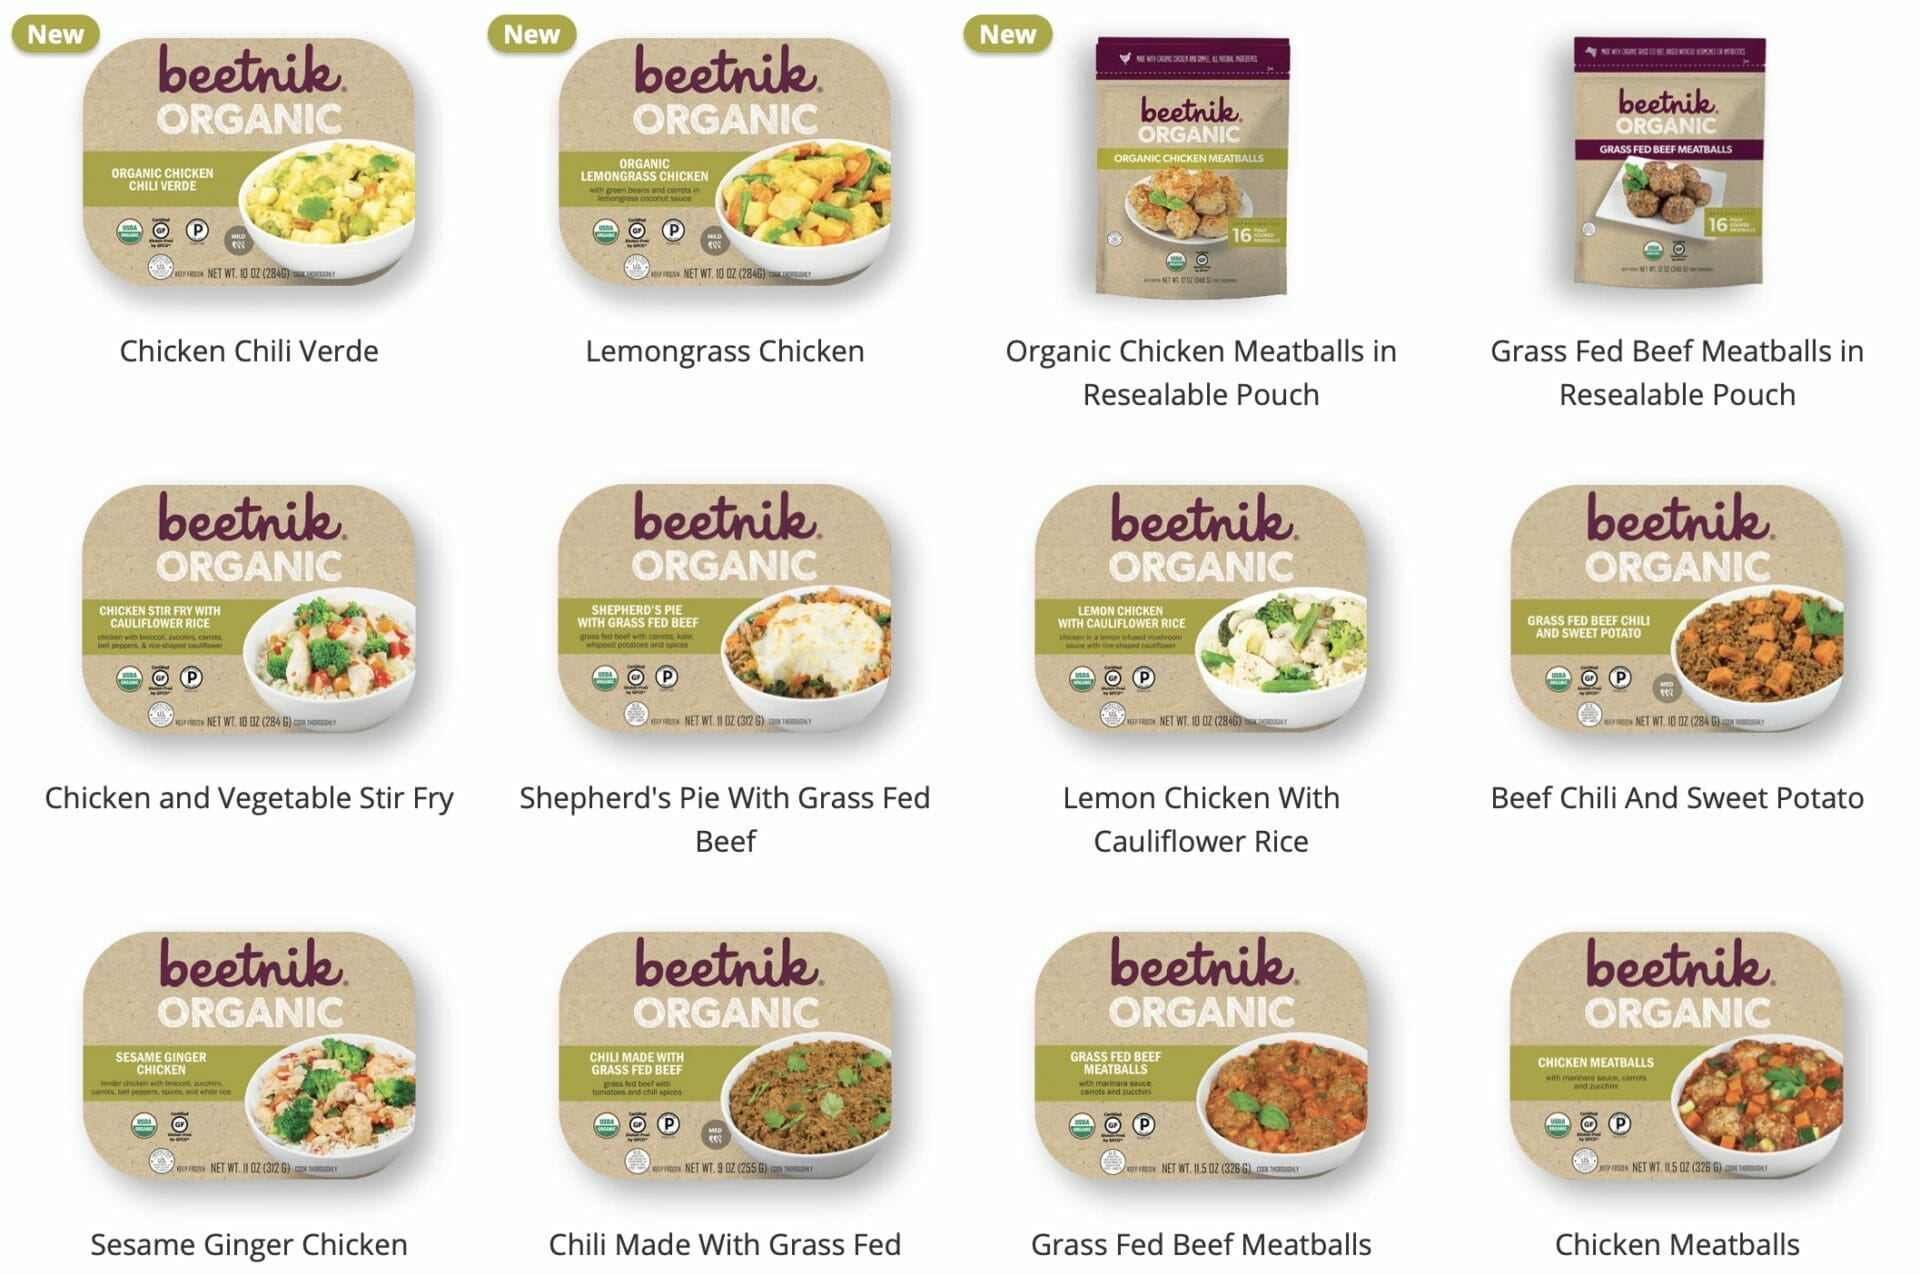 Beetnik - High-quality yet inexpensive meals